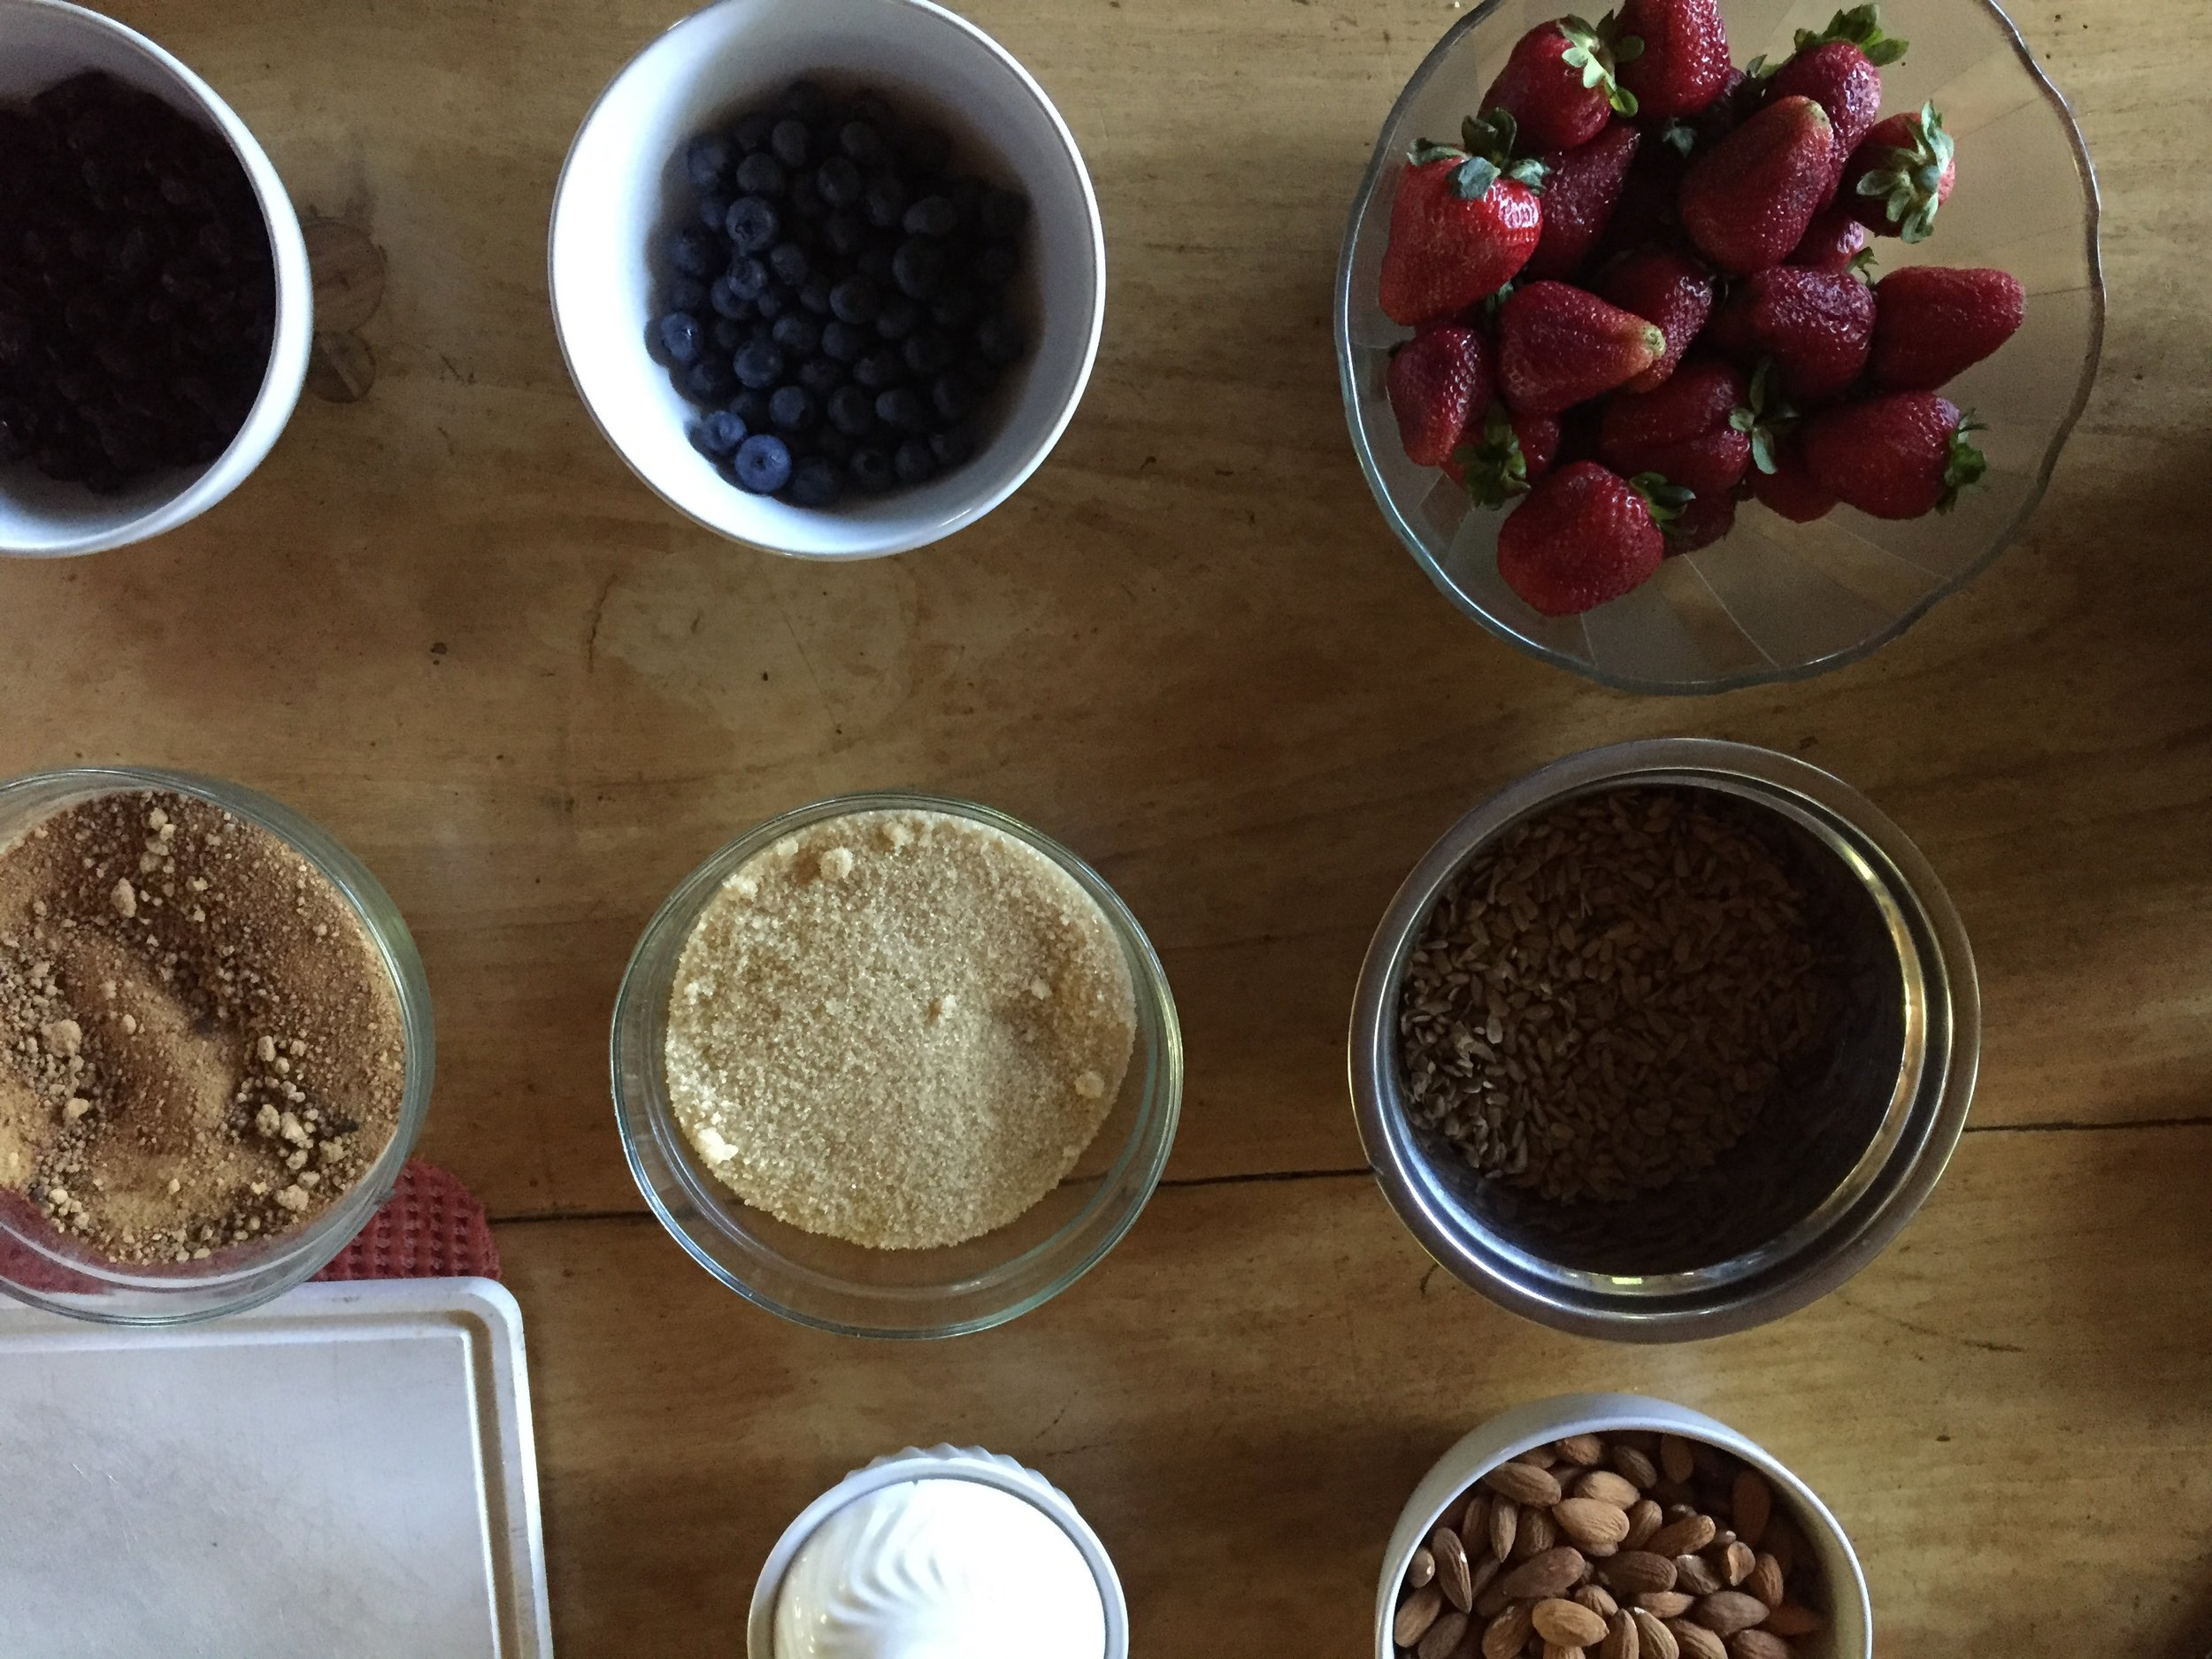 The base ingredients for our vegan strawberry cheesecake